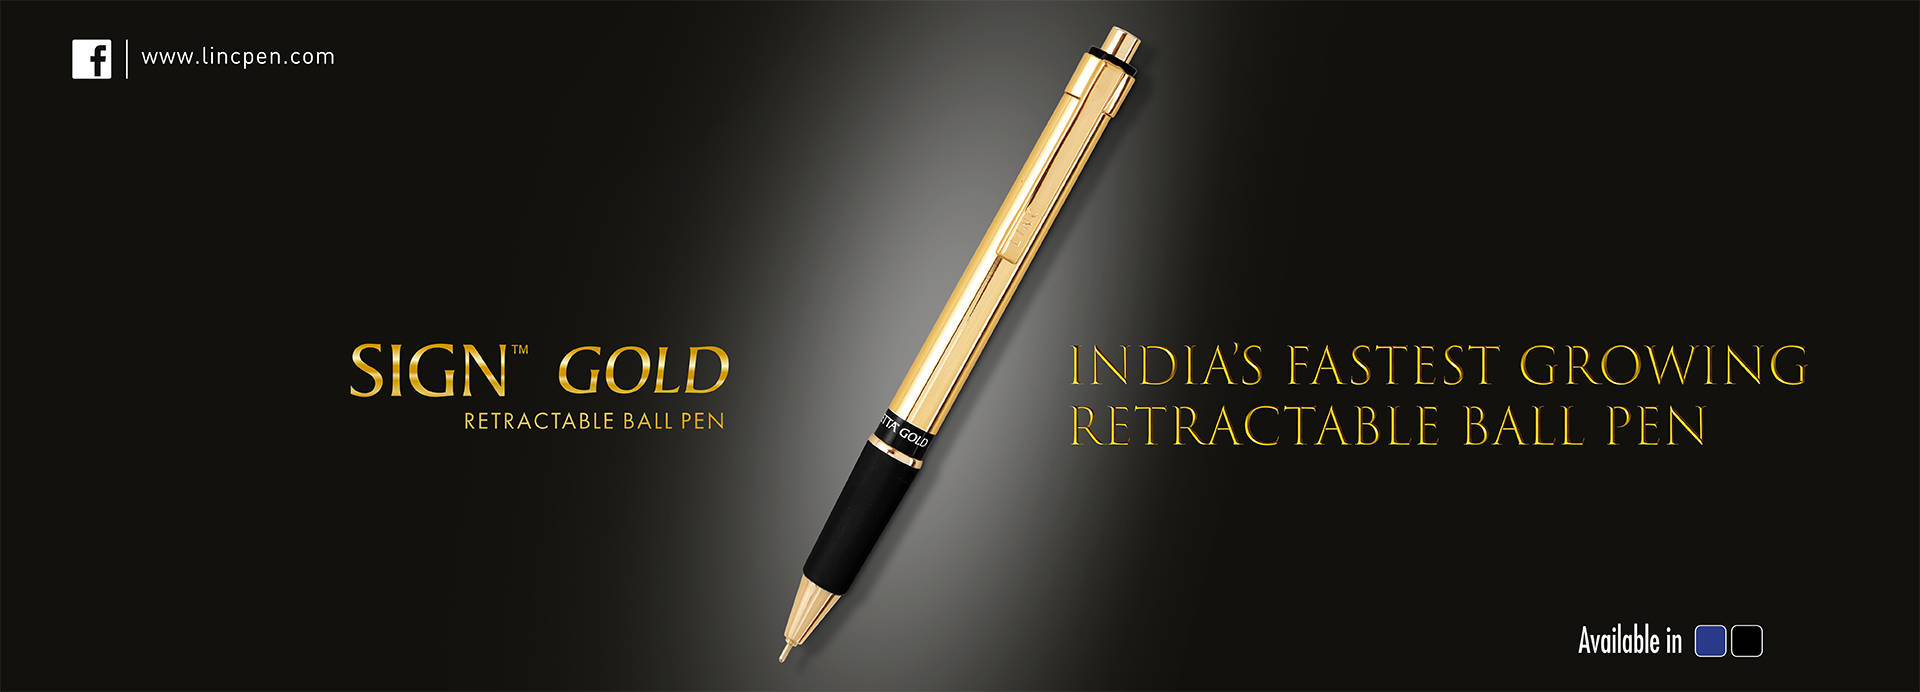 Signetta Gold Ball Pen